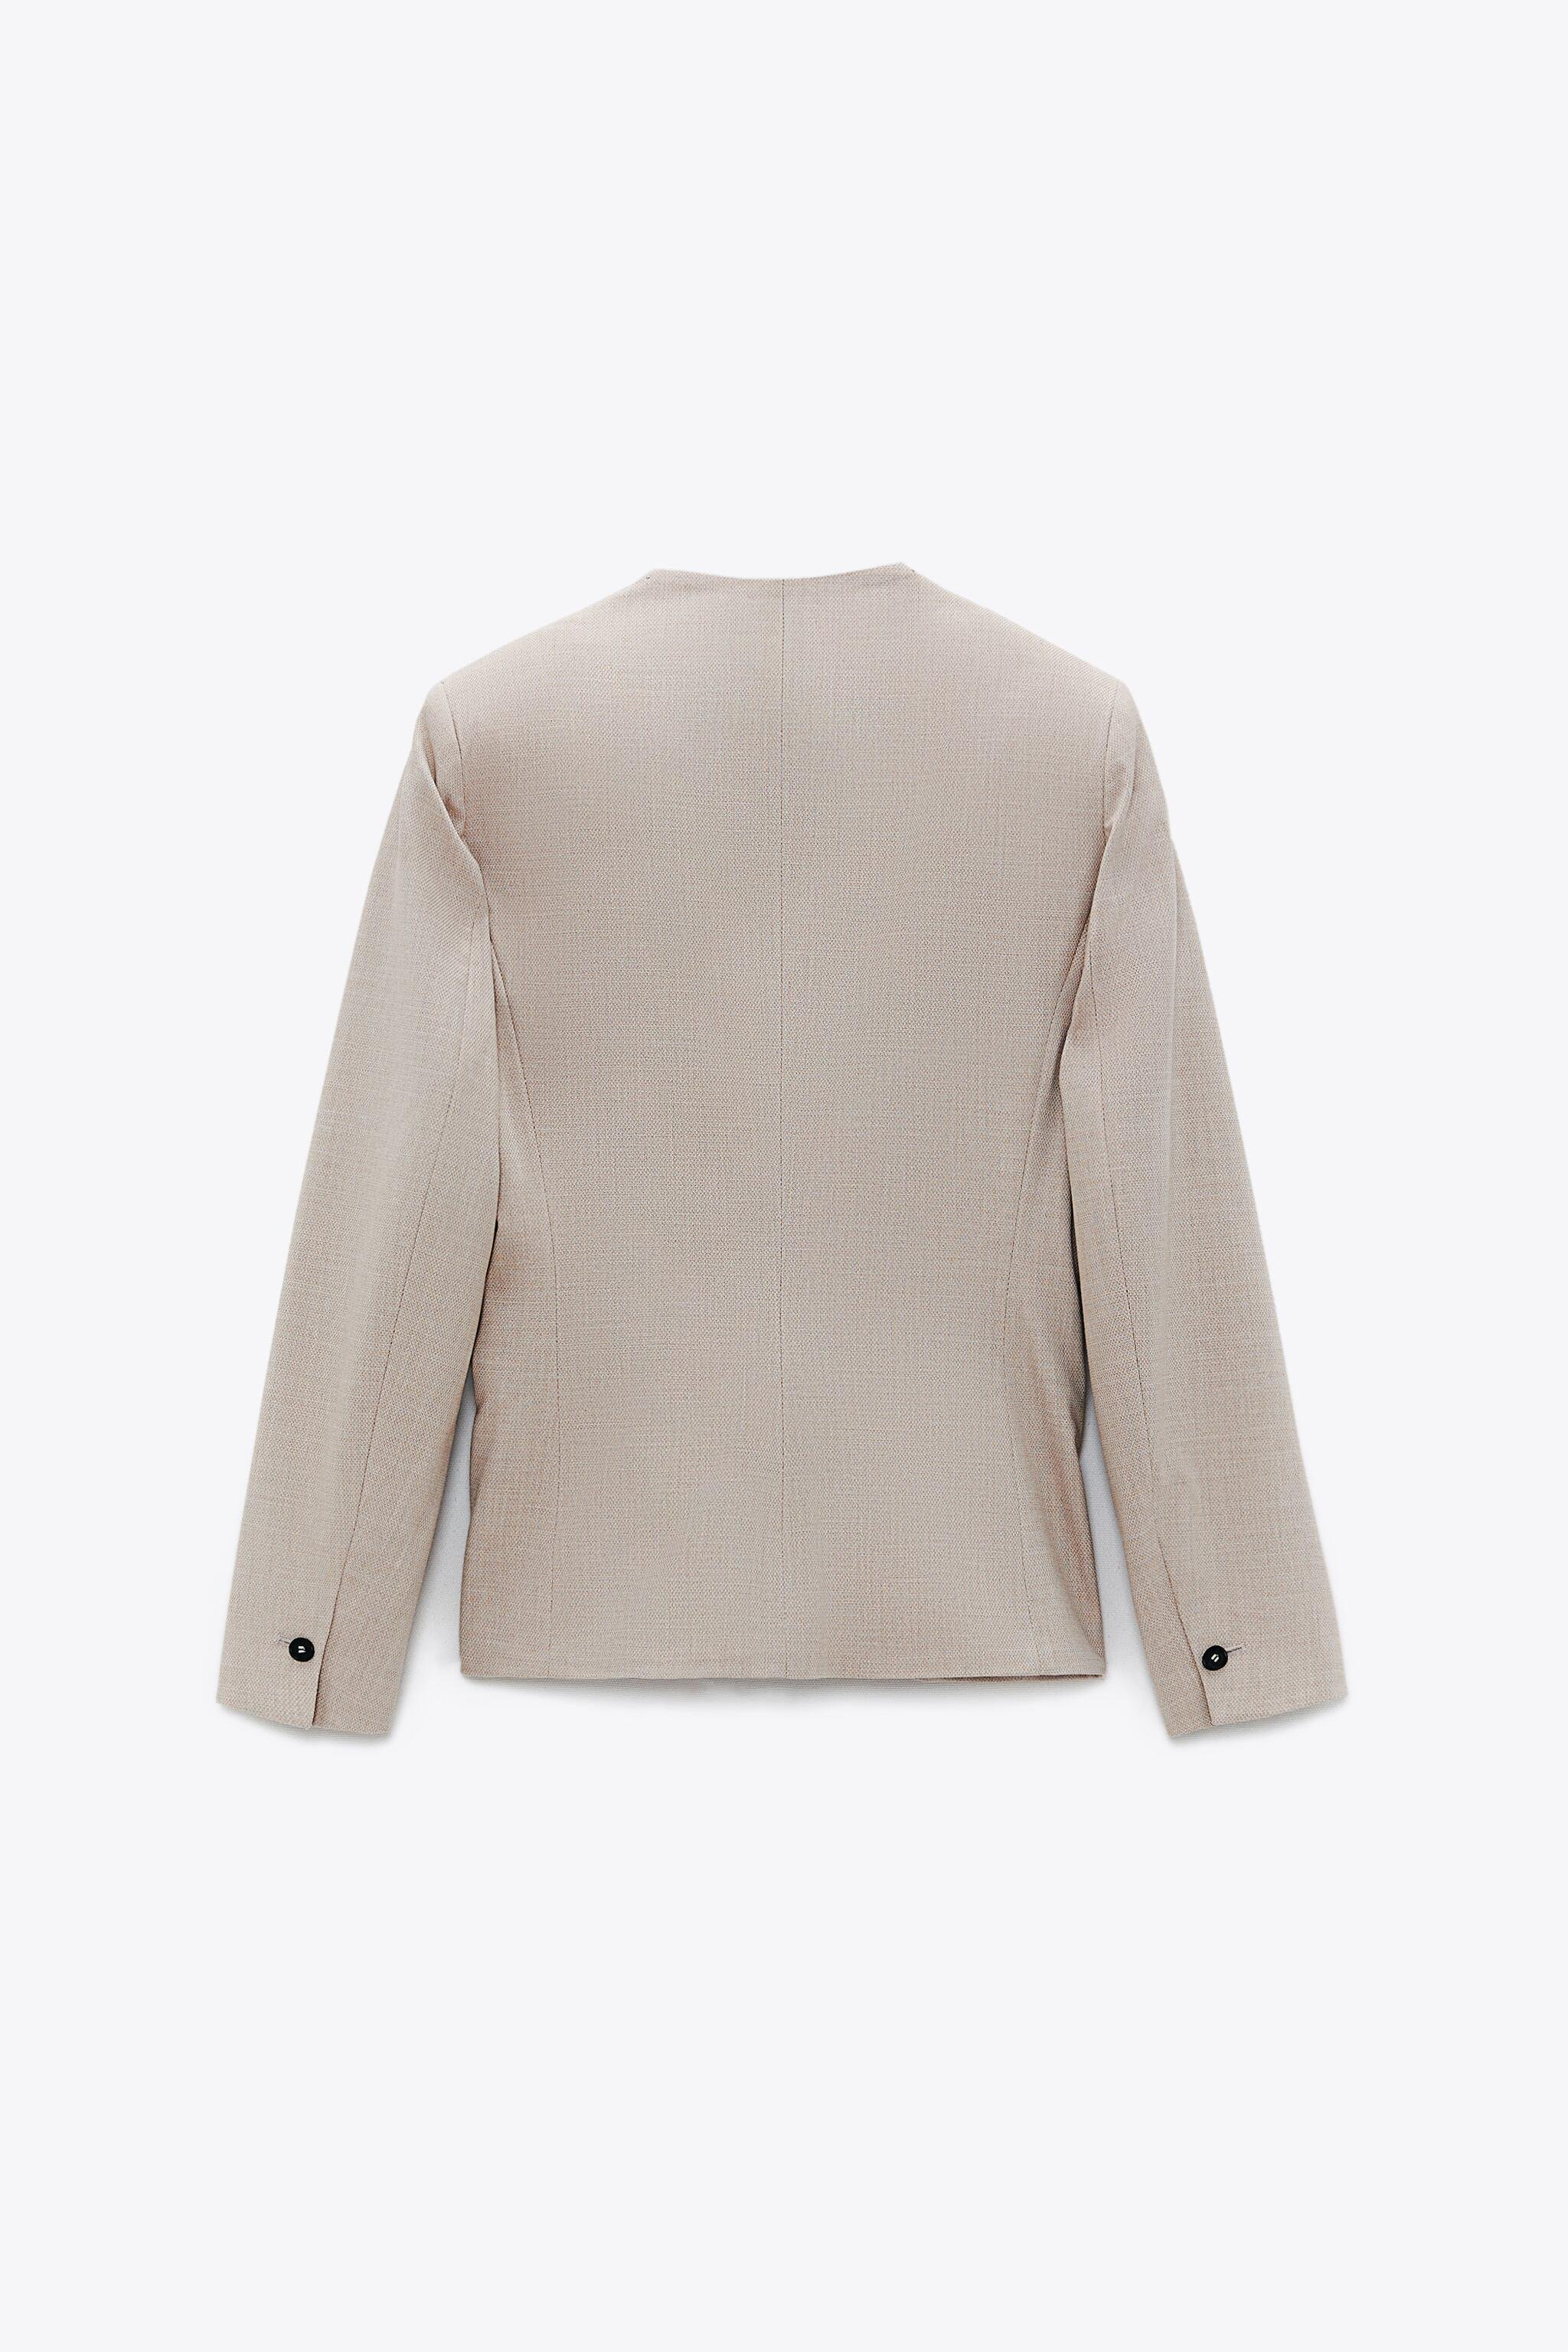 LAPELLESS FITTED BLAZER 3